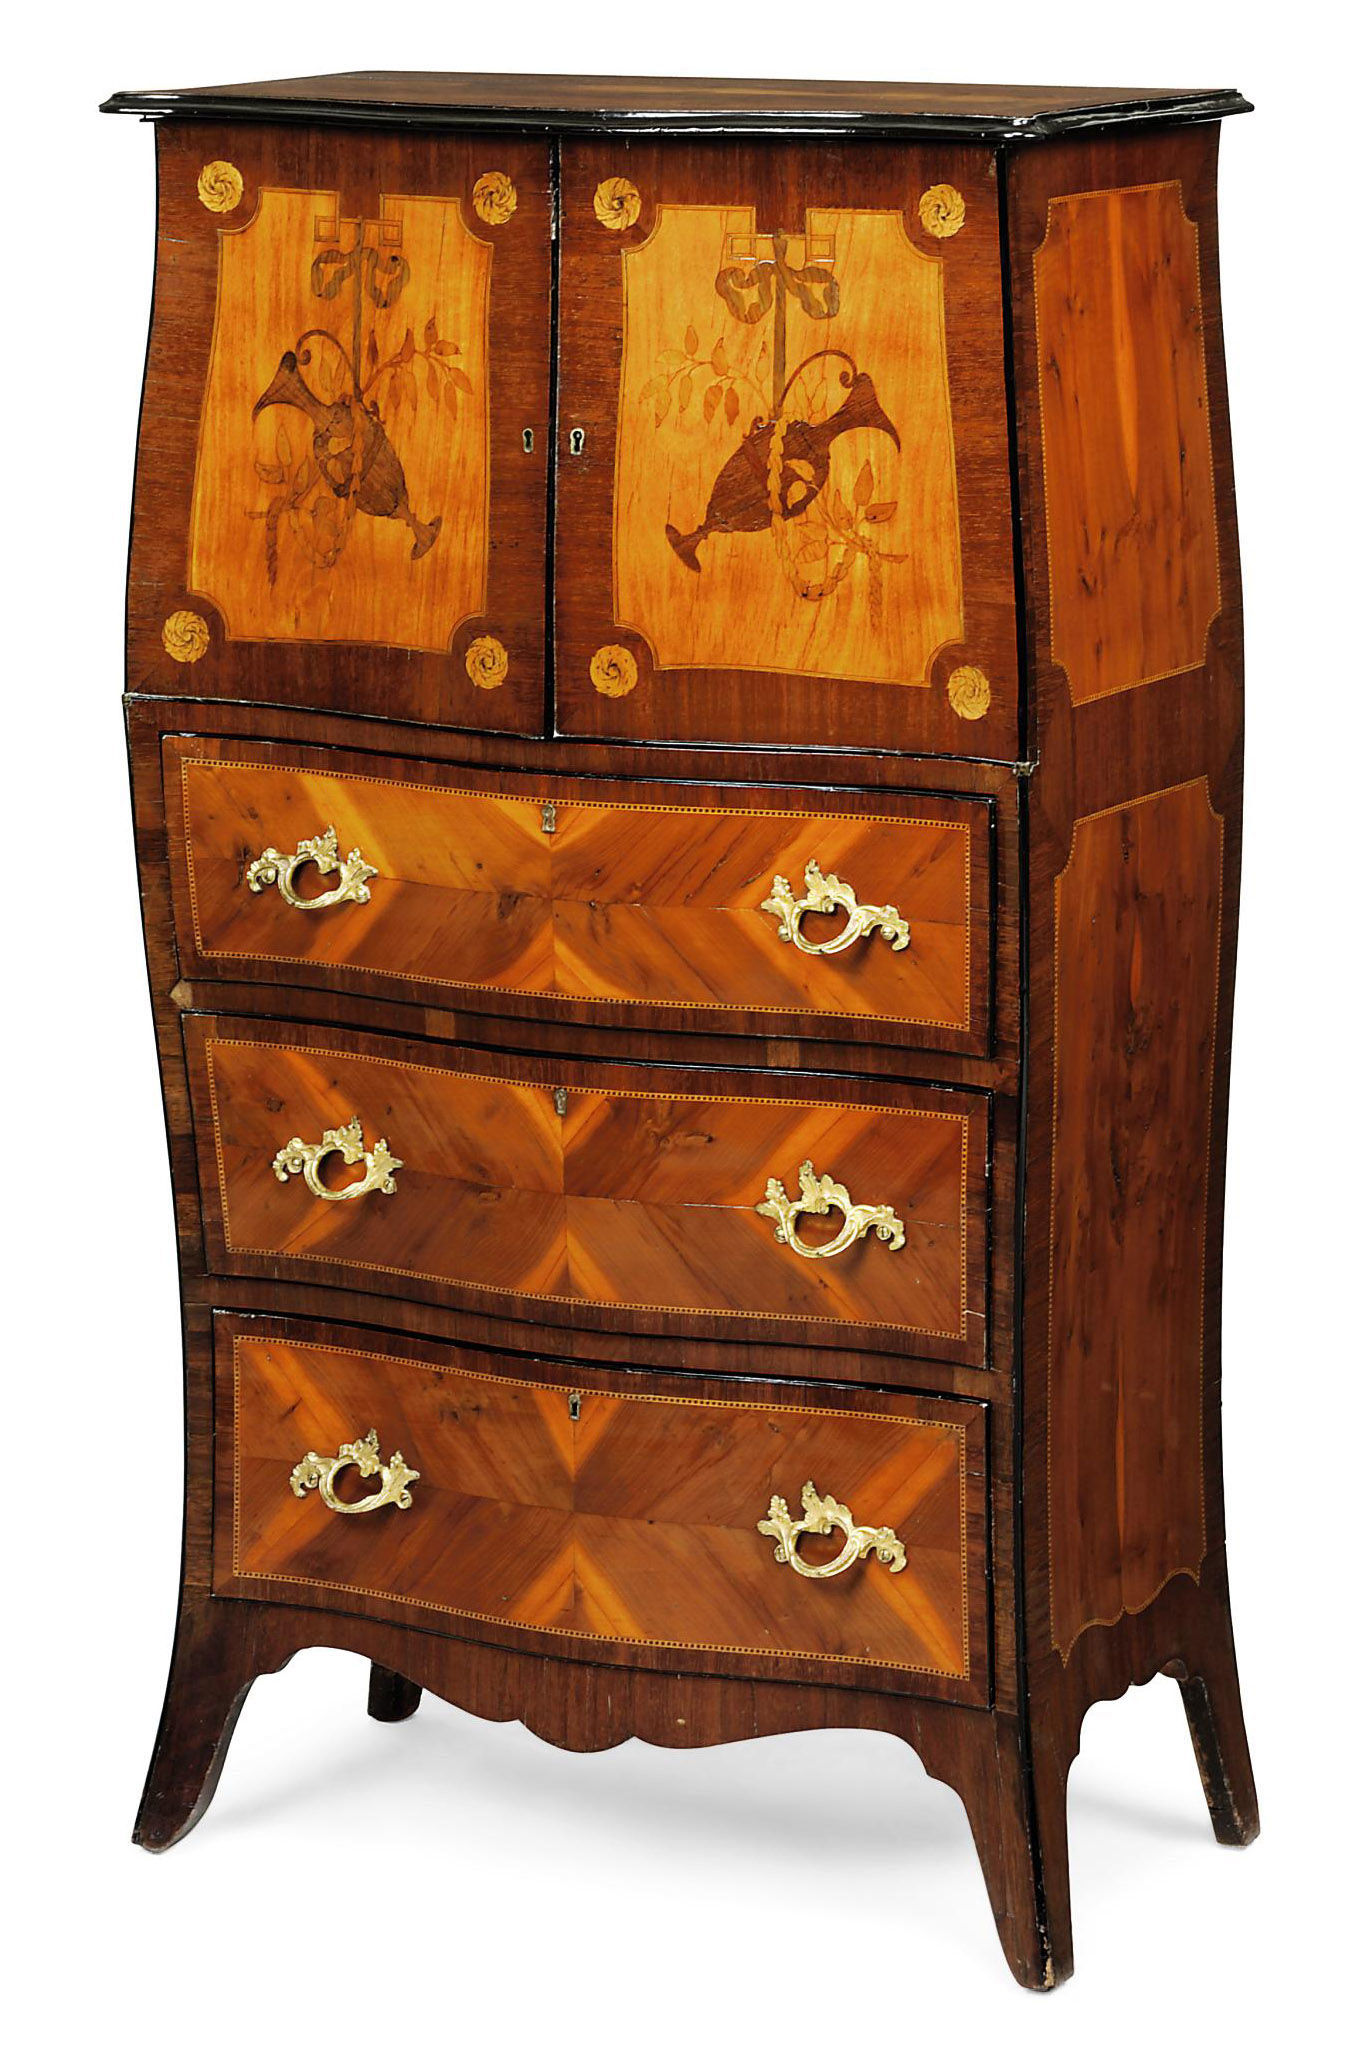 A GEORGE III ORMOLU-MOUNTED BURR-YEW, AMARANTH AND MARQUETRY BOMBE SECRETAIRE-CABINET